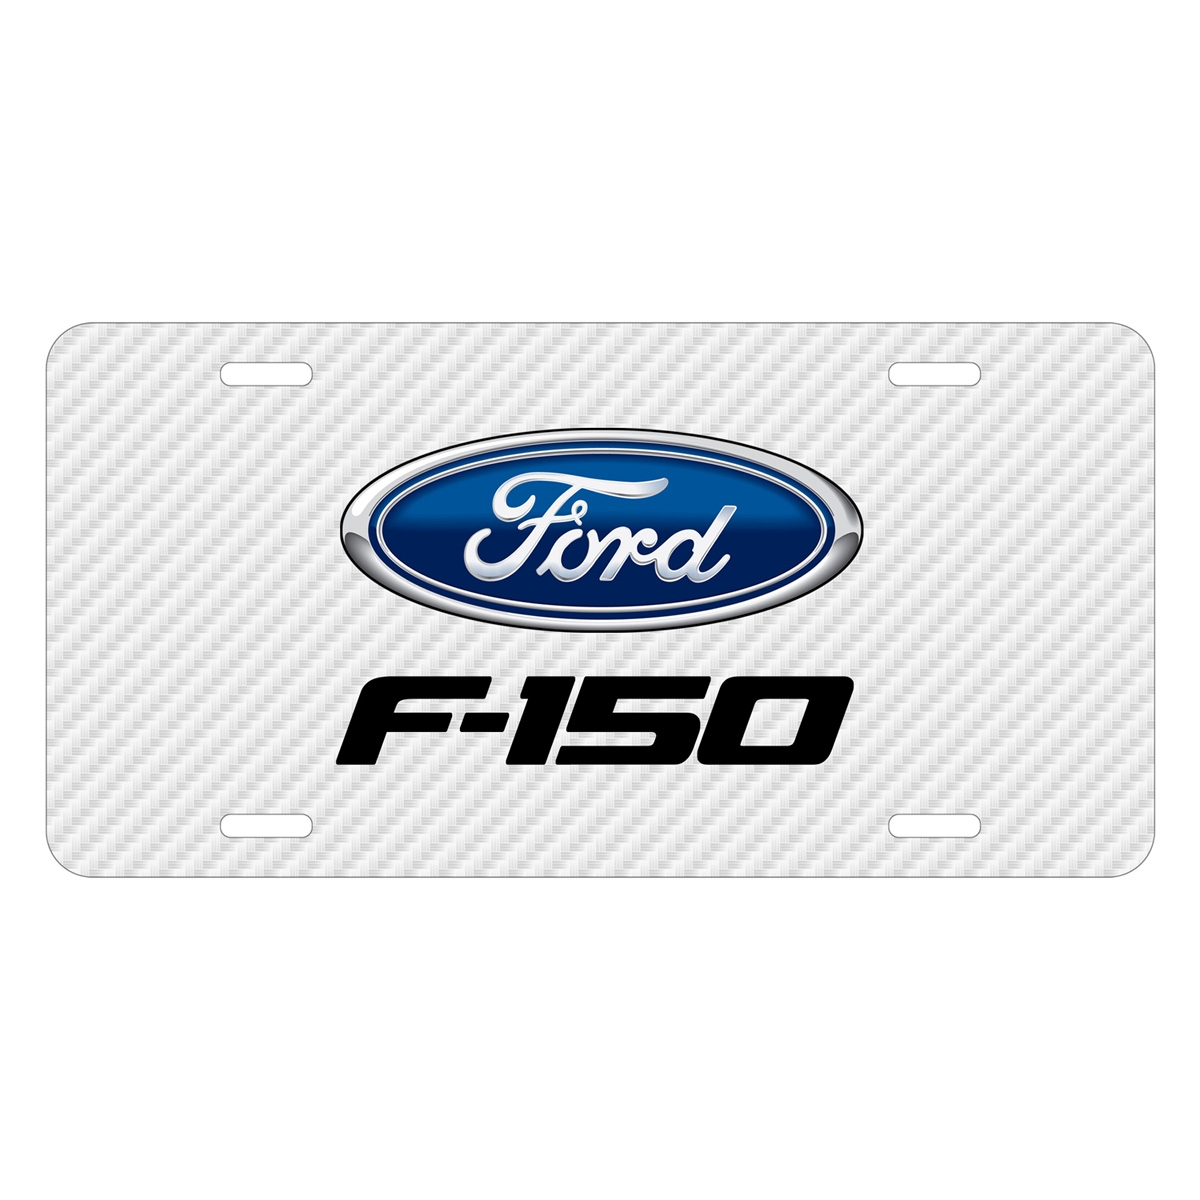 Ford F-150 2009 to 2014 White Carbon Fiber Texture Graphic UV Metal License Plate